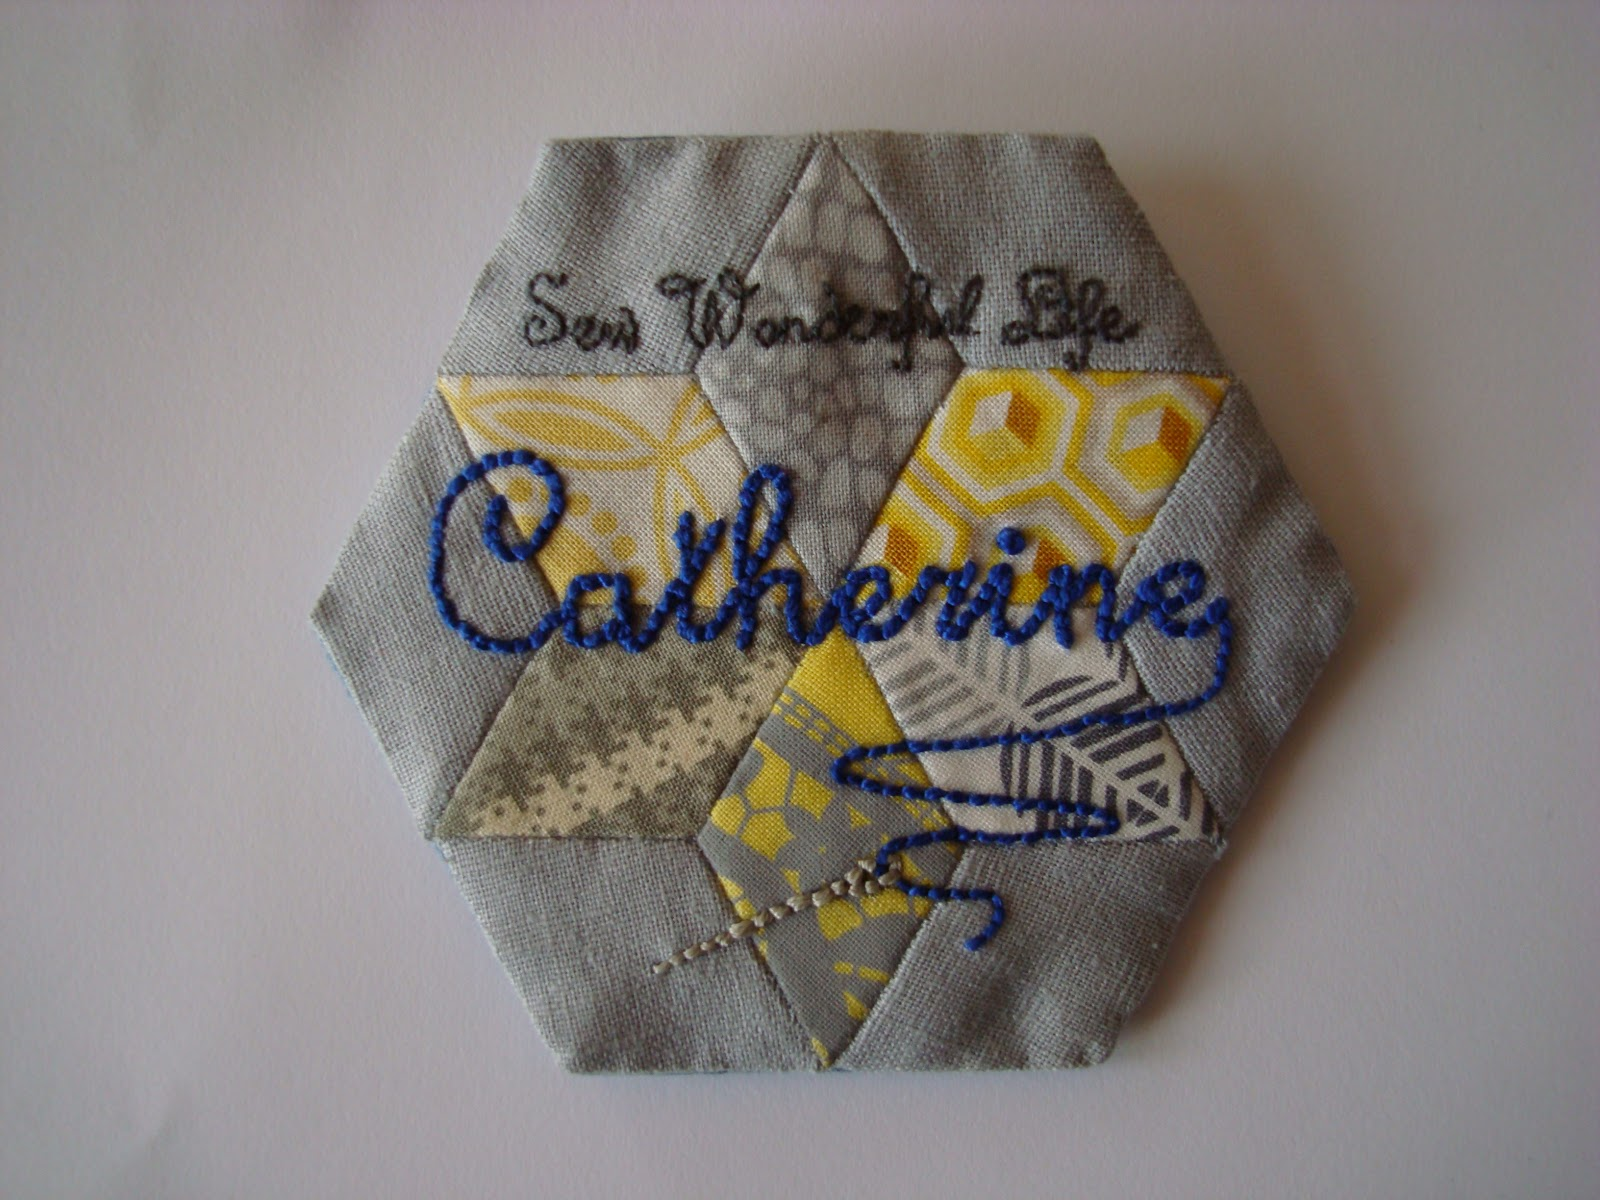 hexagon brooch made of kite shapes with Catherine embroidered across the middle